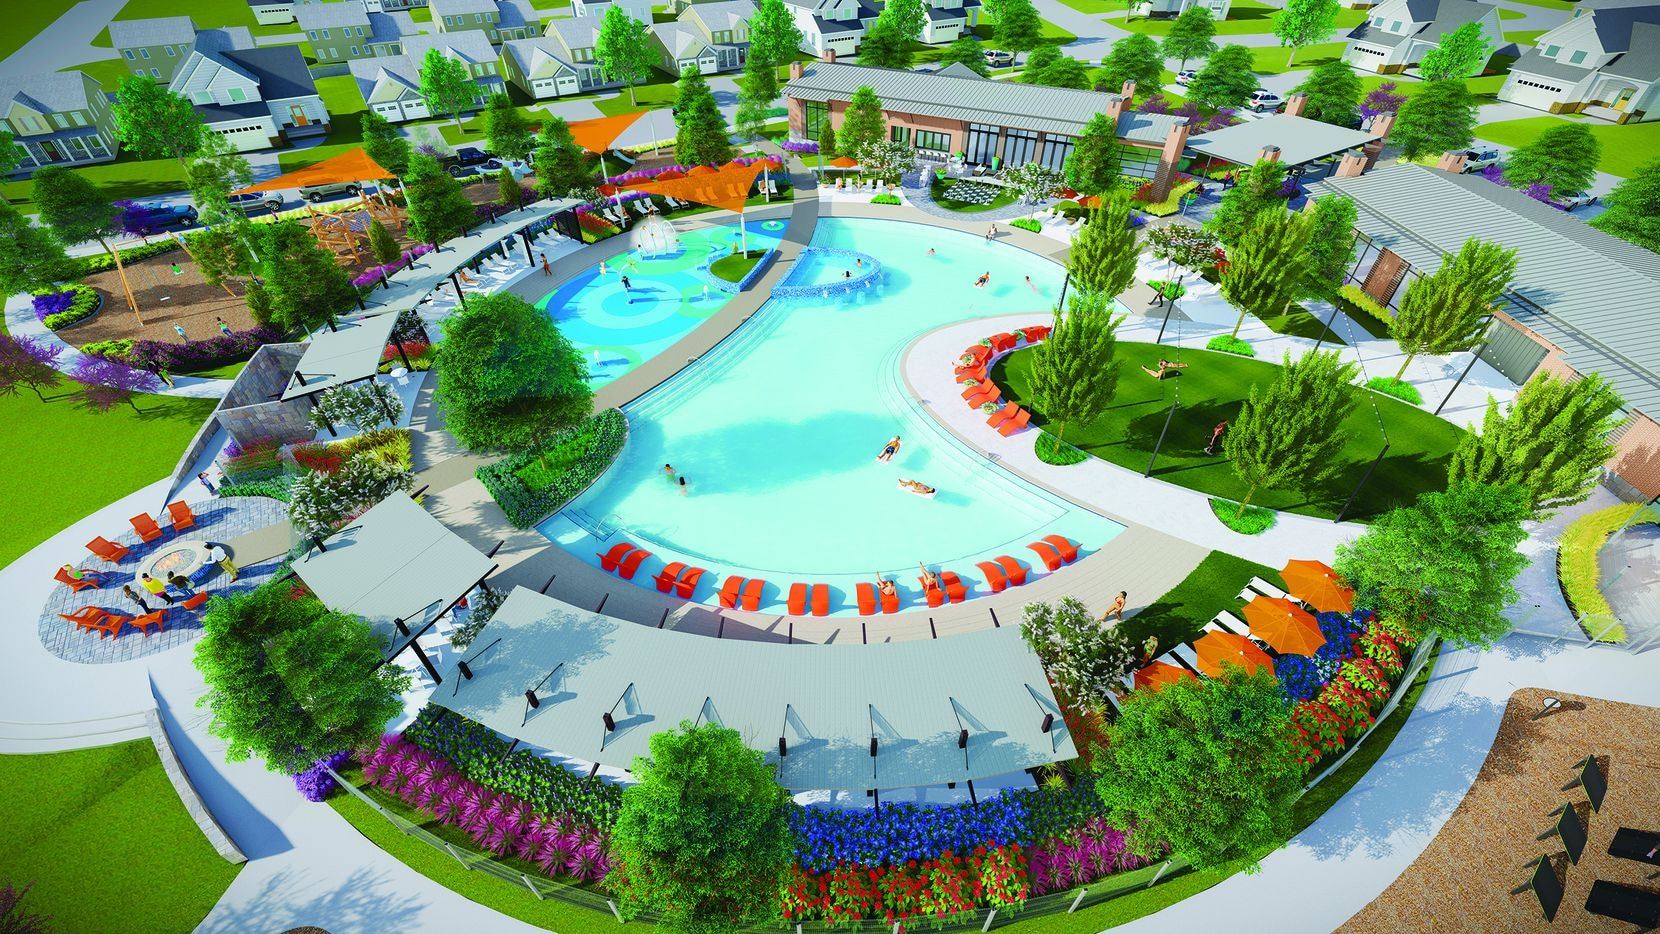 This is an artist's rendering of the state-of-the-art 4-plus-acre amenity complex being built in The Ridge at Northlake.